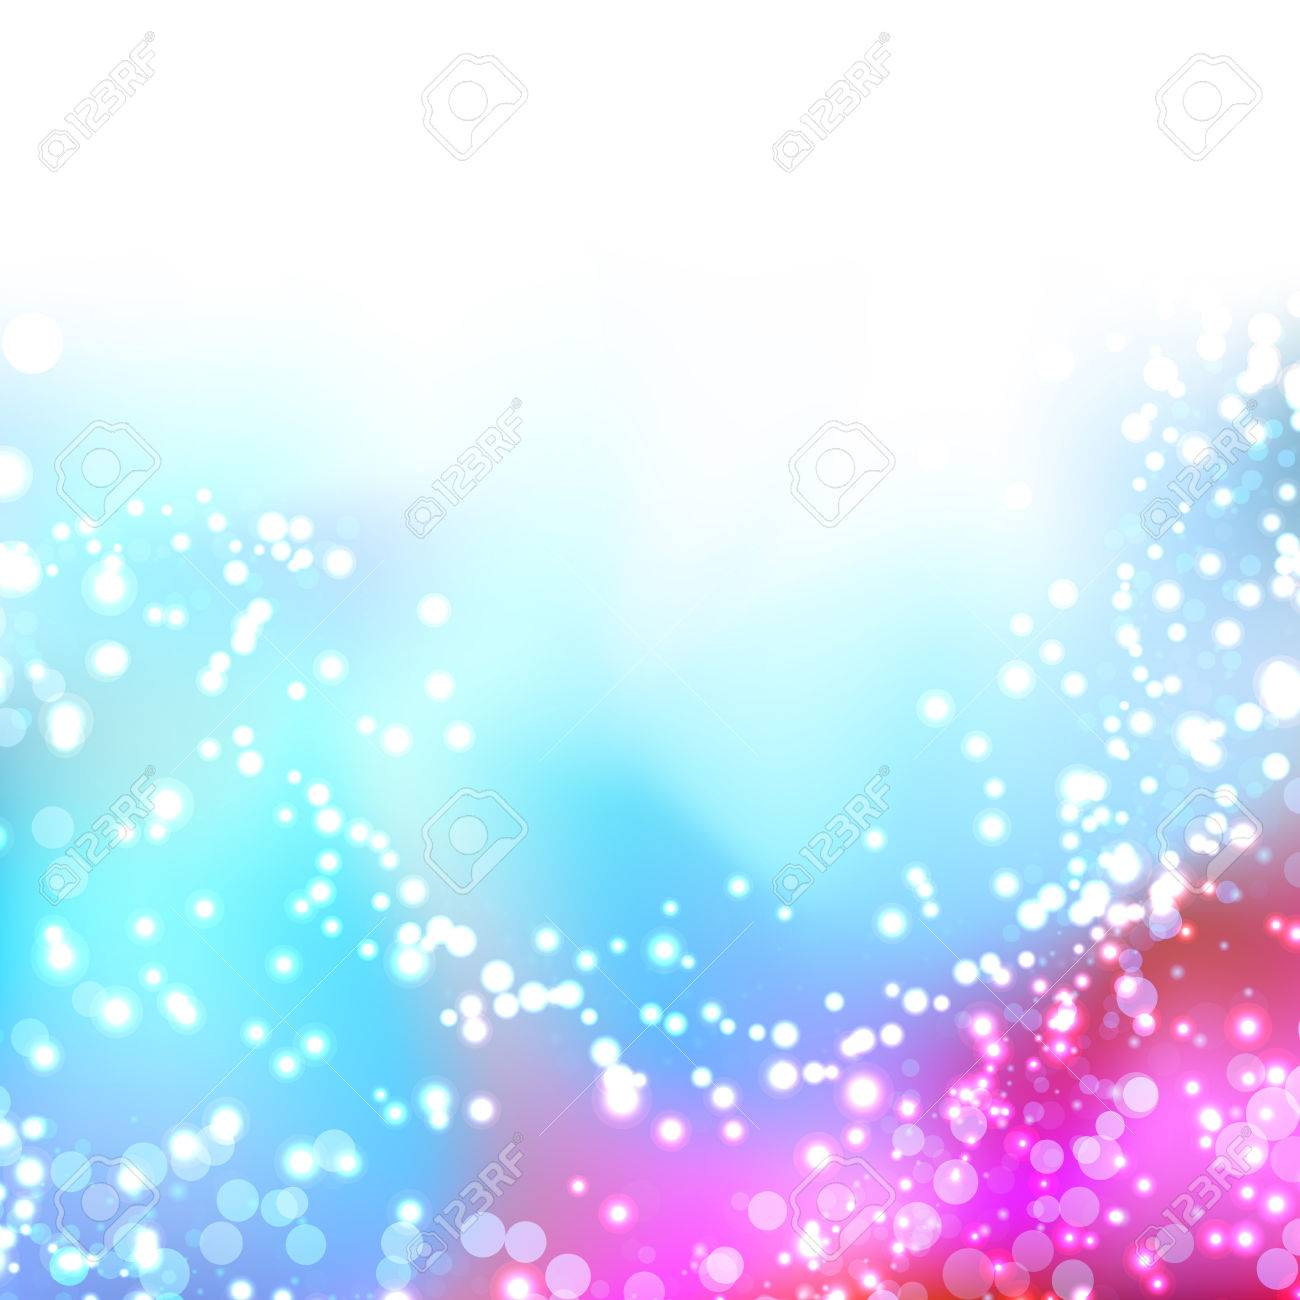 Bright Colorful Shimmering Seasonal Background Lens Flare Abstract